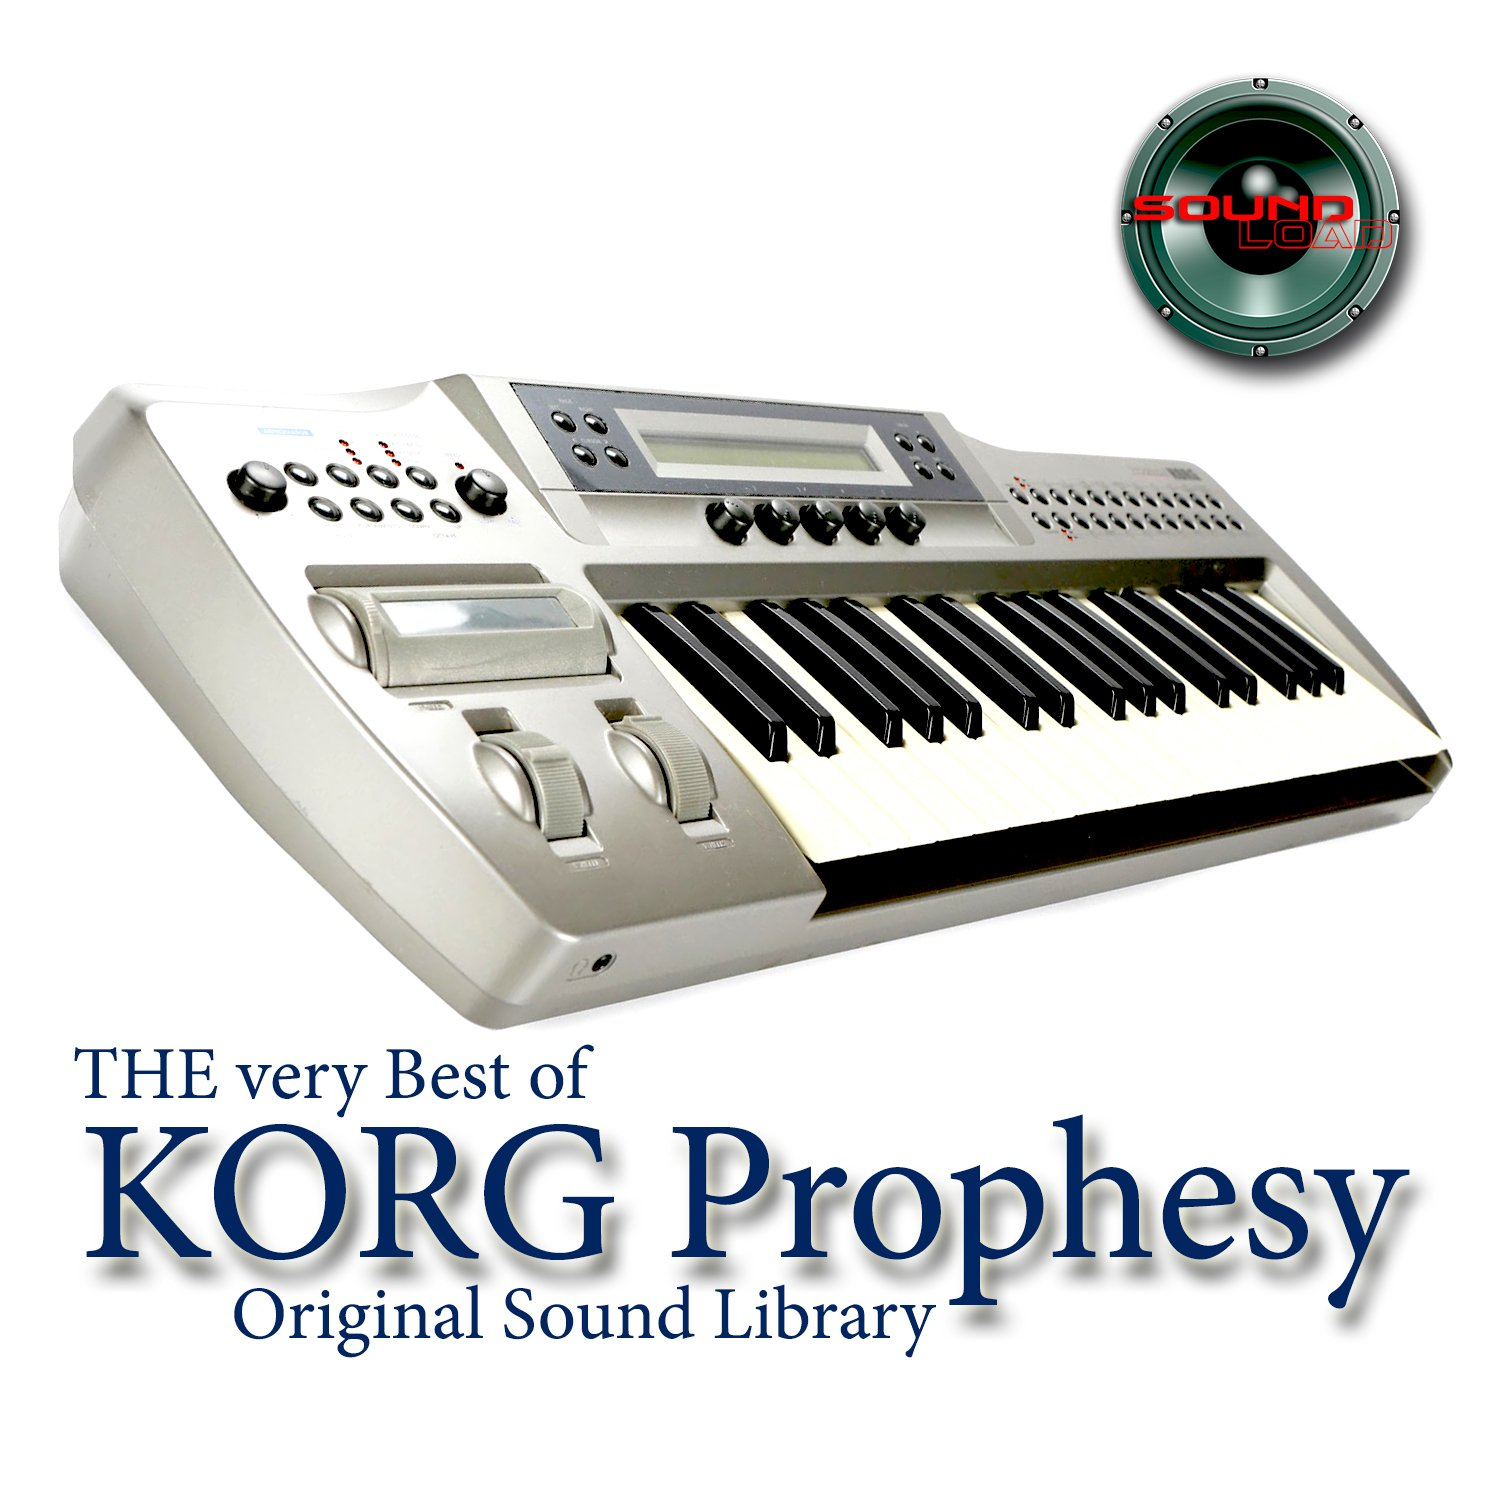 KORG PROPHESY - Large Sound Library - Original Samples in WAVEs format on DVD or for download by SoundLoad